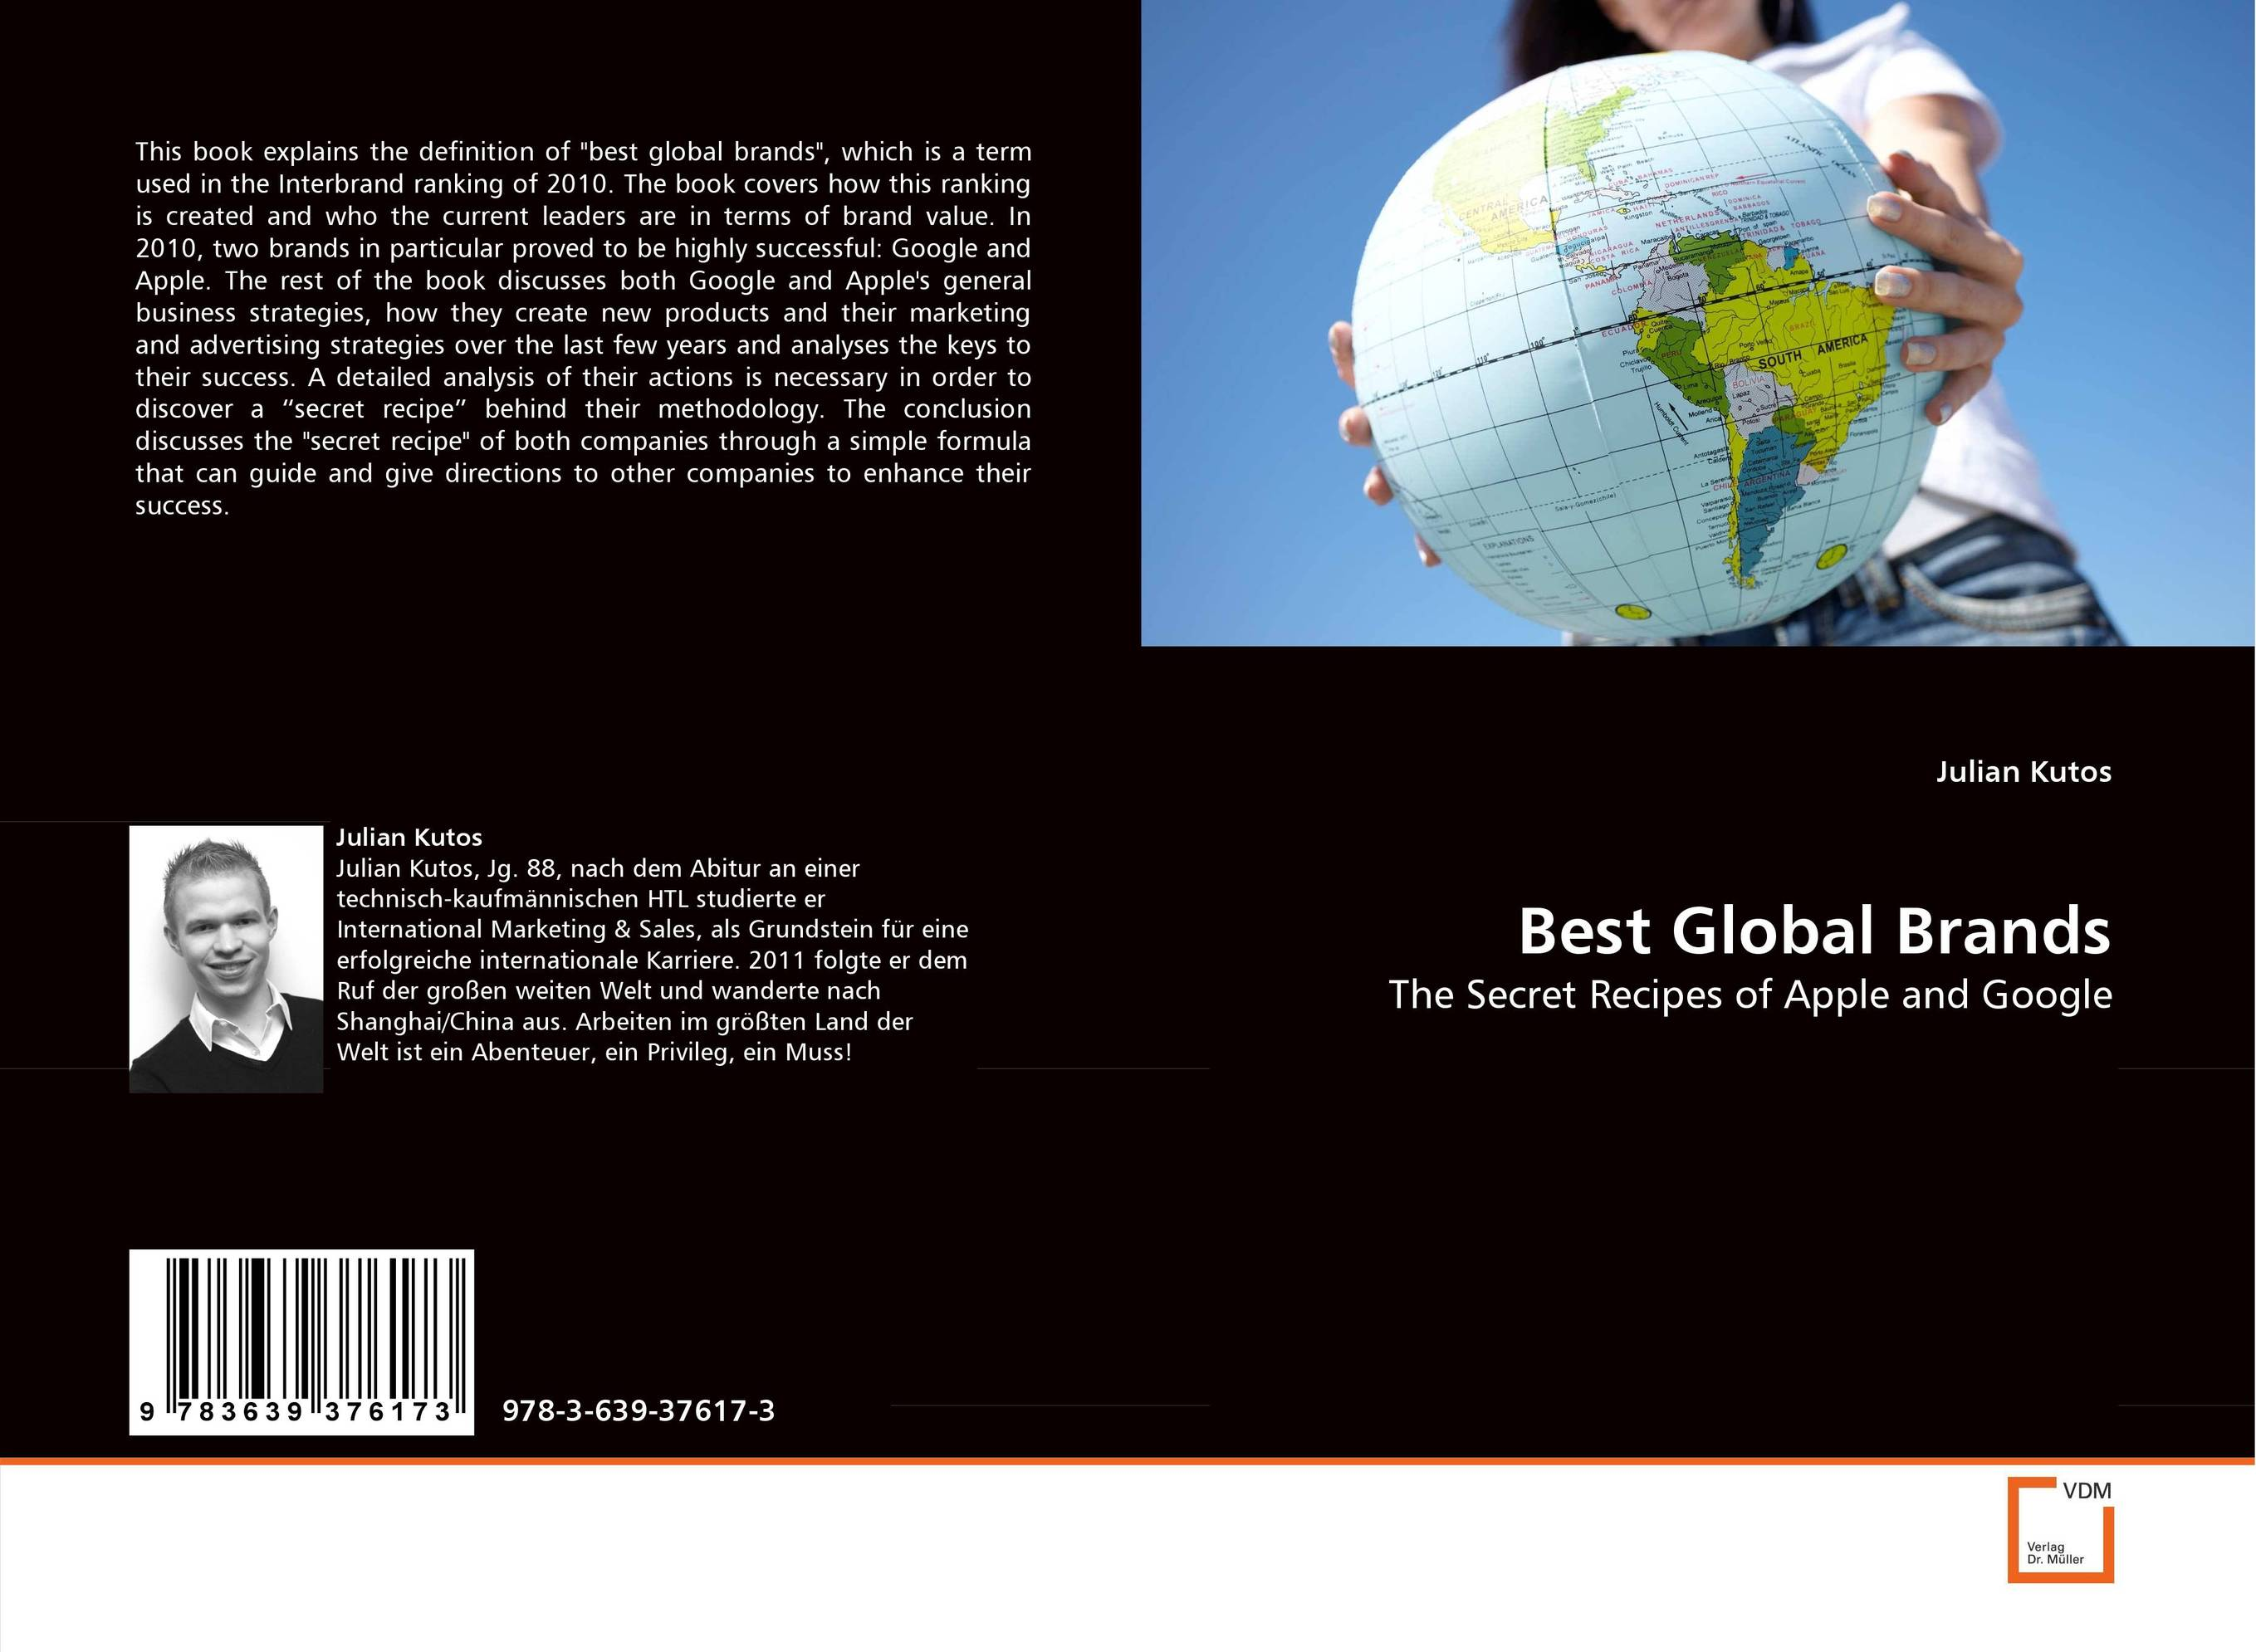 Best Global Brands edgar iii wachenheim common stocks and common sense the strategies analyses decisions and emotions of a particularly successful value investor